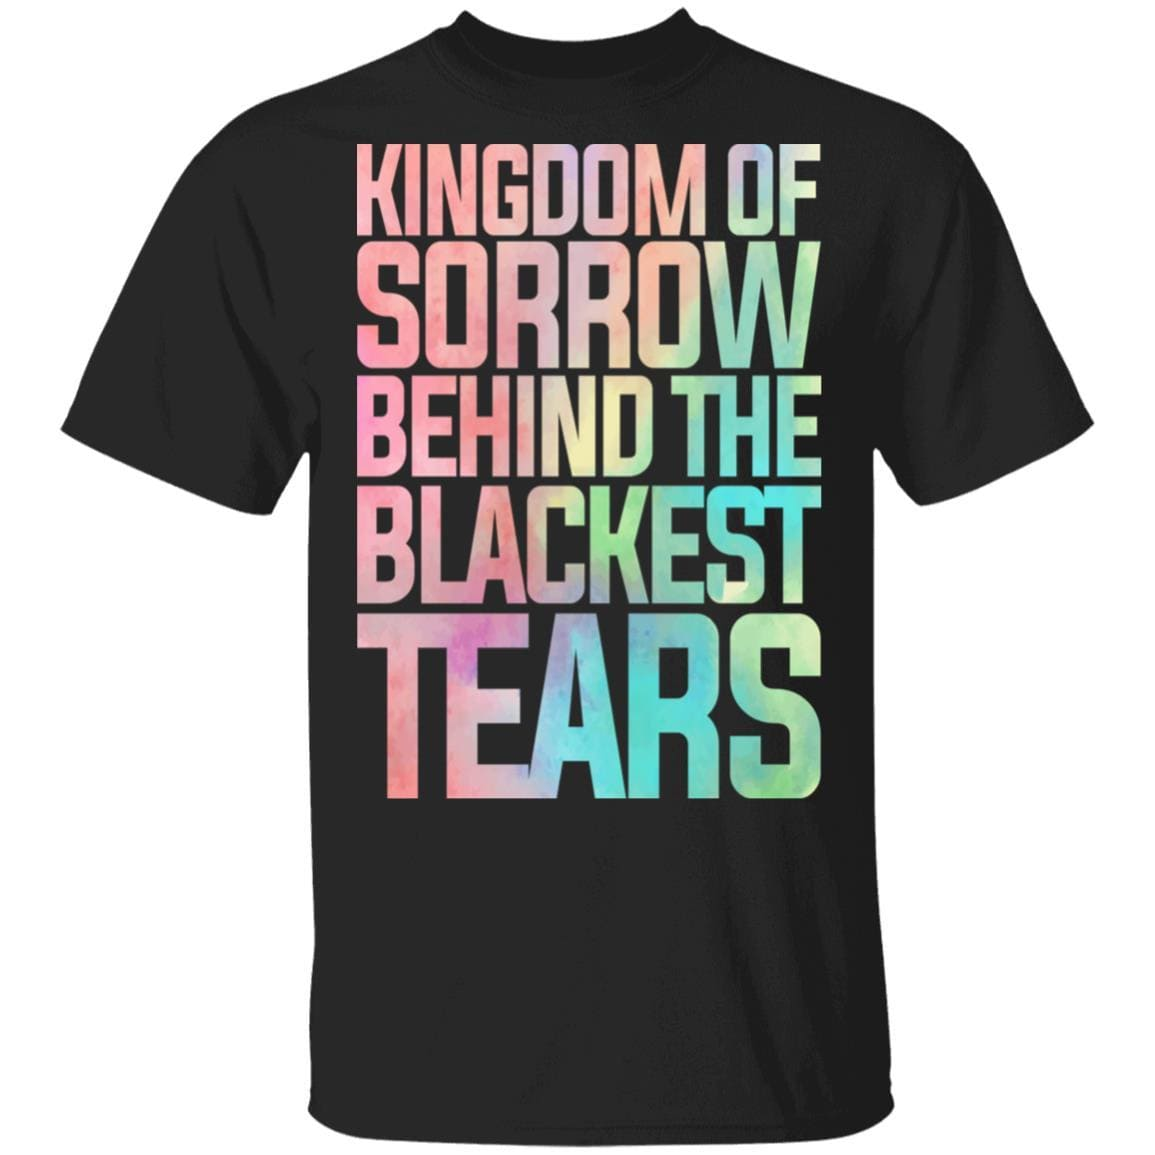 Kingdom Of Sorrow Behind The Blackest Tears T-Shirts, Hoodies 1049-9953-87589179-48144 - Tee Ript